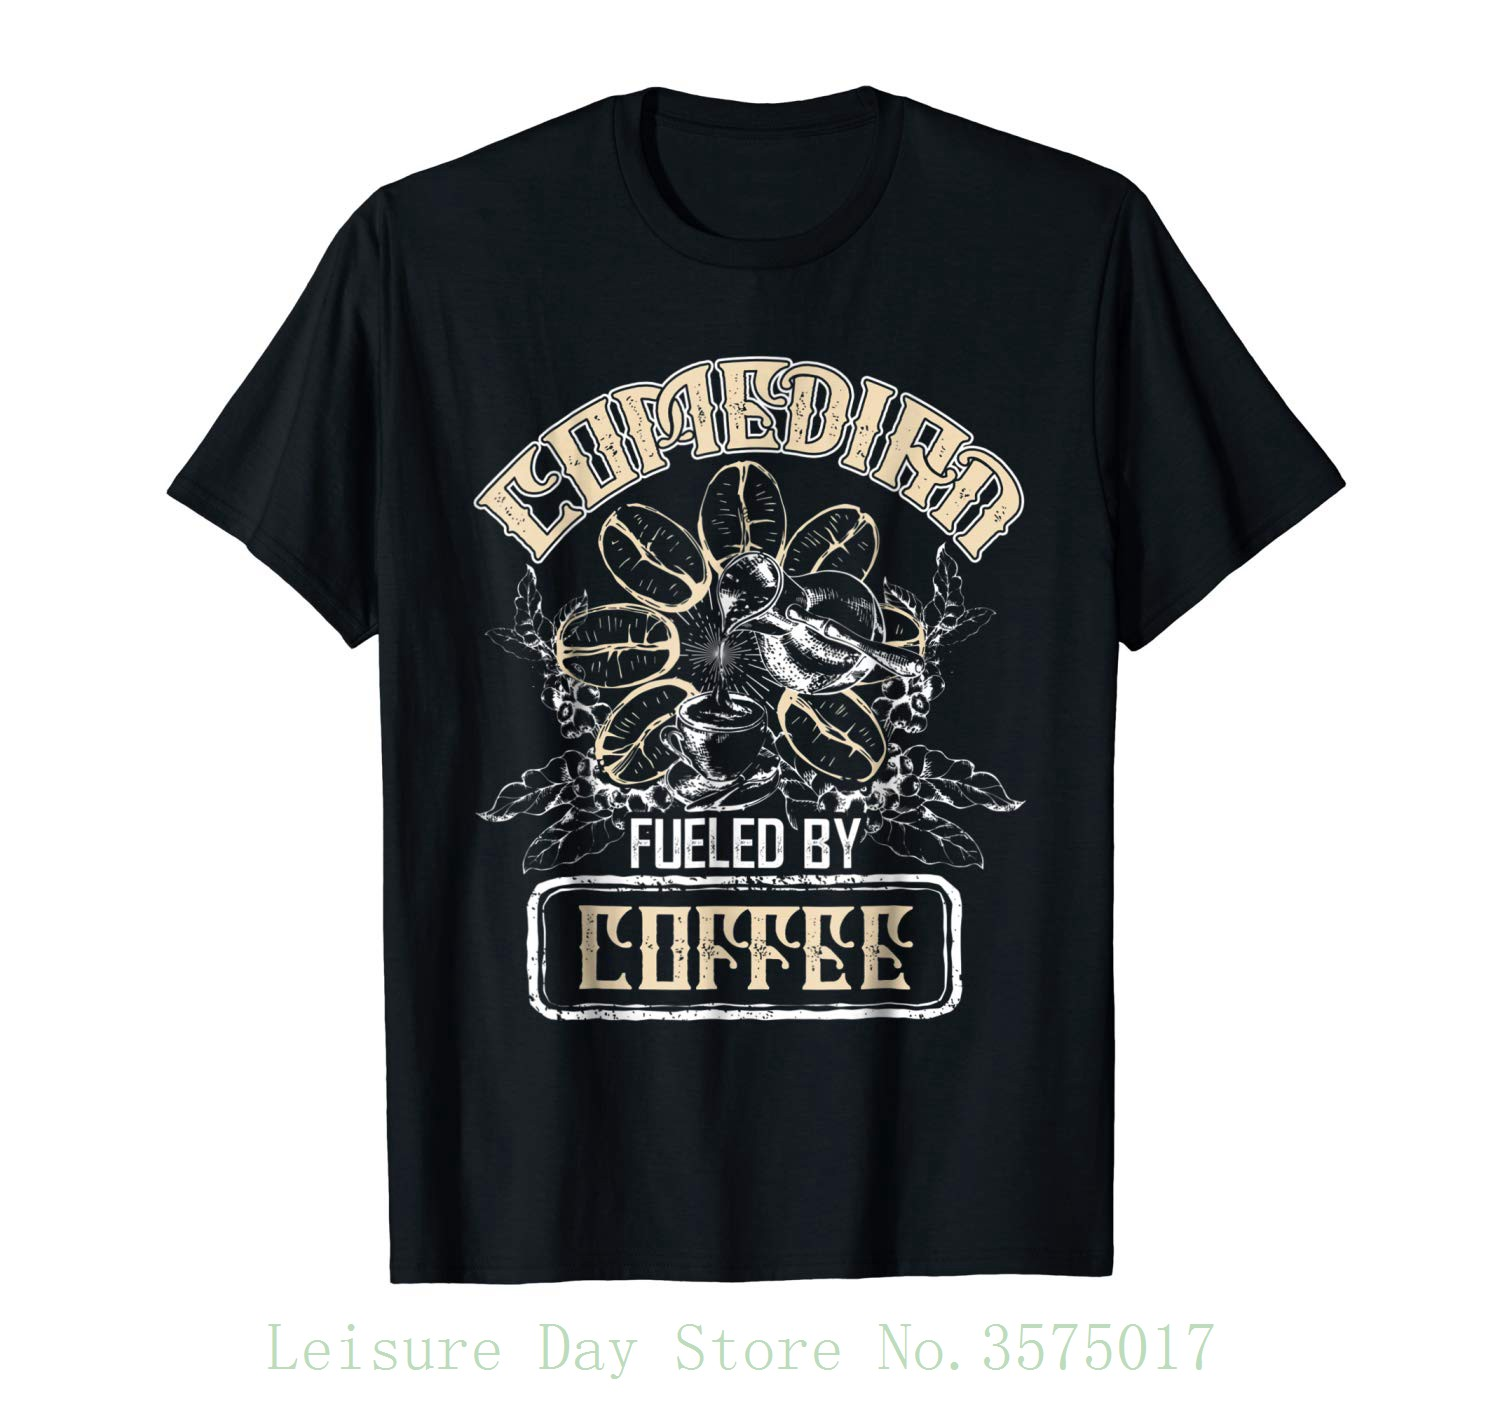 Comedian T Shirt , Fueled By Coffee T Shirt Summer Short Sleeve Shirts Tops S~3xl Big Size Cotton Tees Free Shipping image